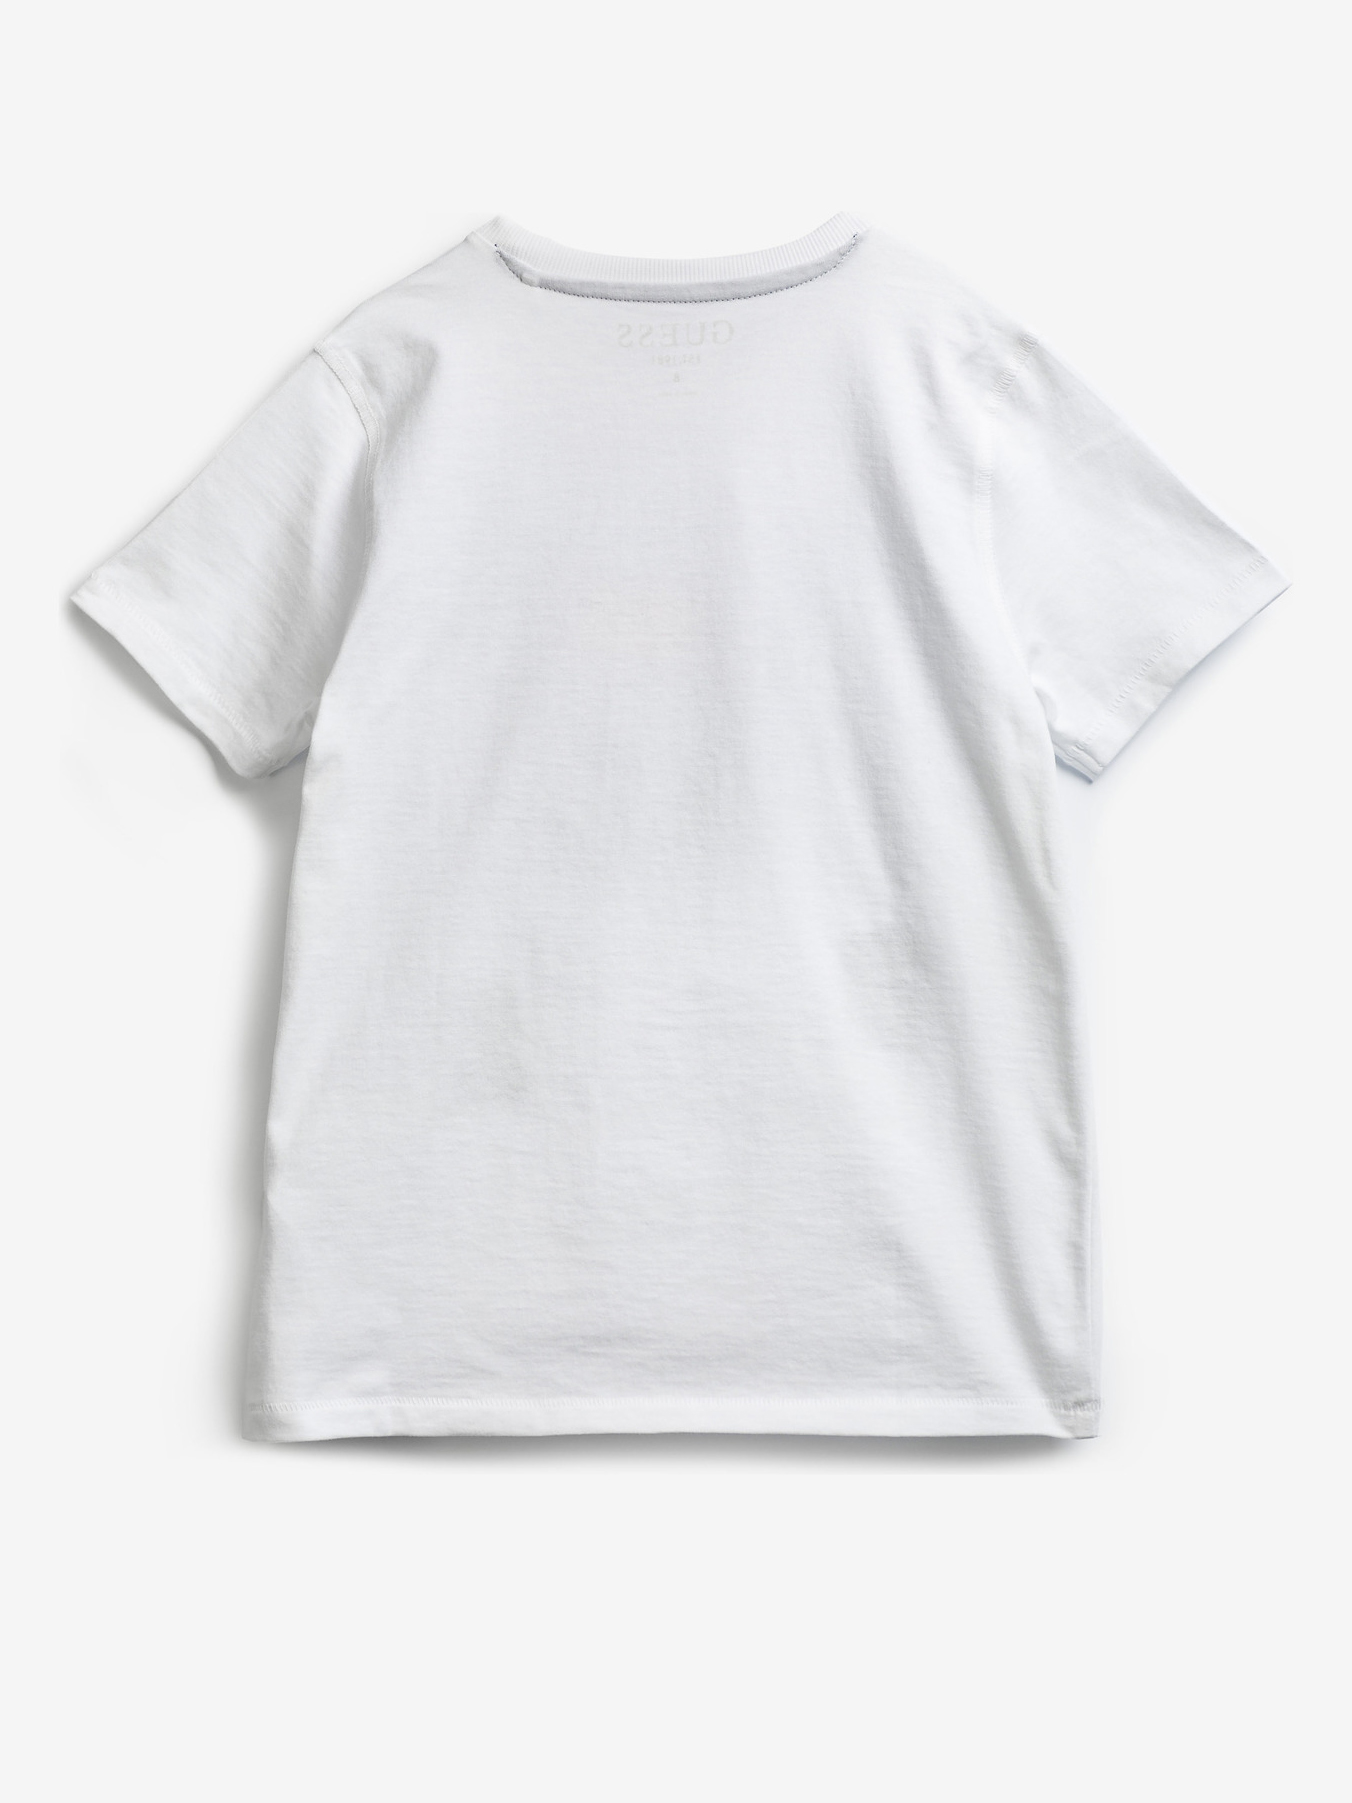 Guess Embroidery Front Logo Kids T-shirt White